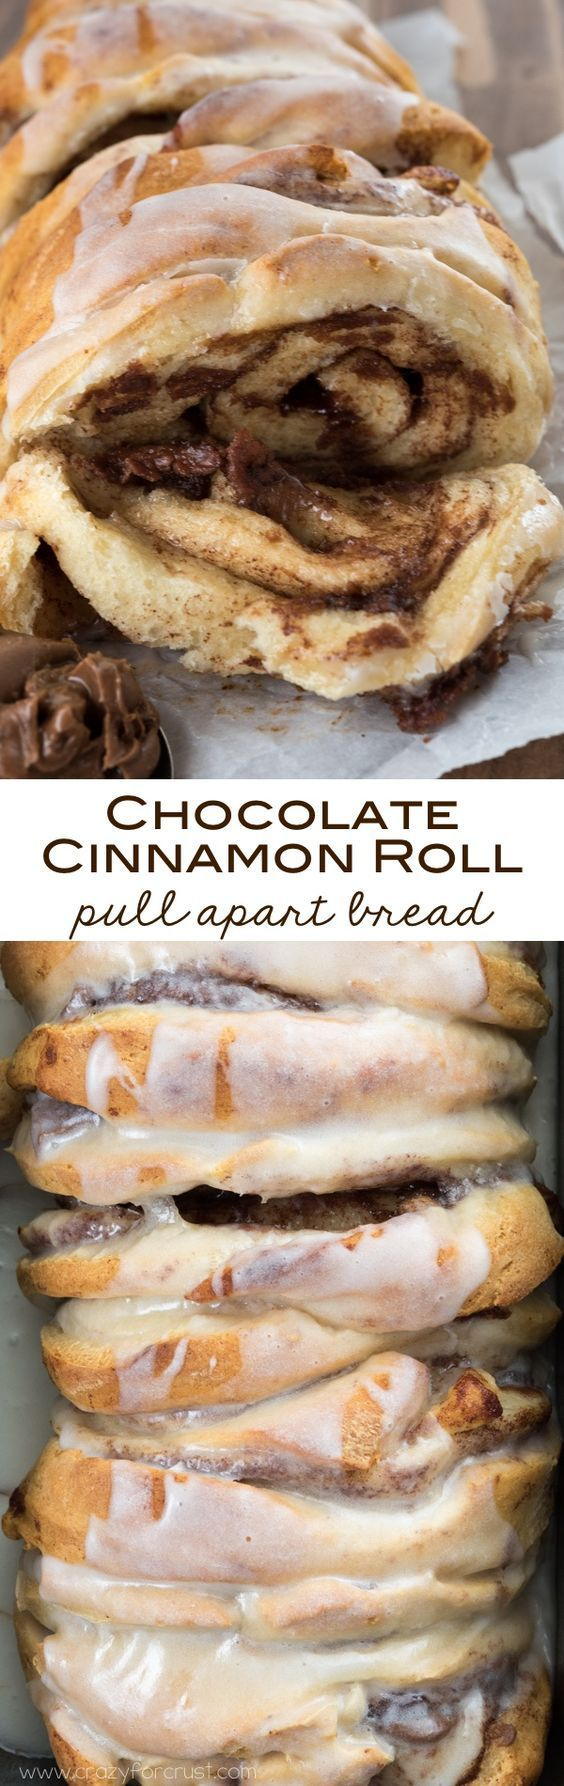 Chocolate Cinnamon Roll Pull Apart Bread.  We love this recipe because it uses only TWO ingredients and is simple to make!  Cinnamon Roles and Chocolate mixed together?! How could it get any better!